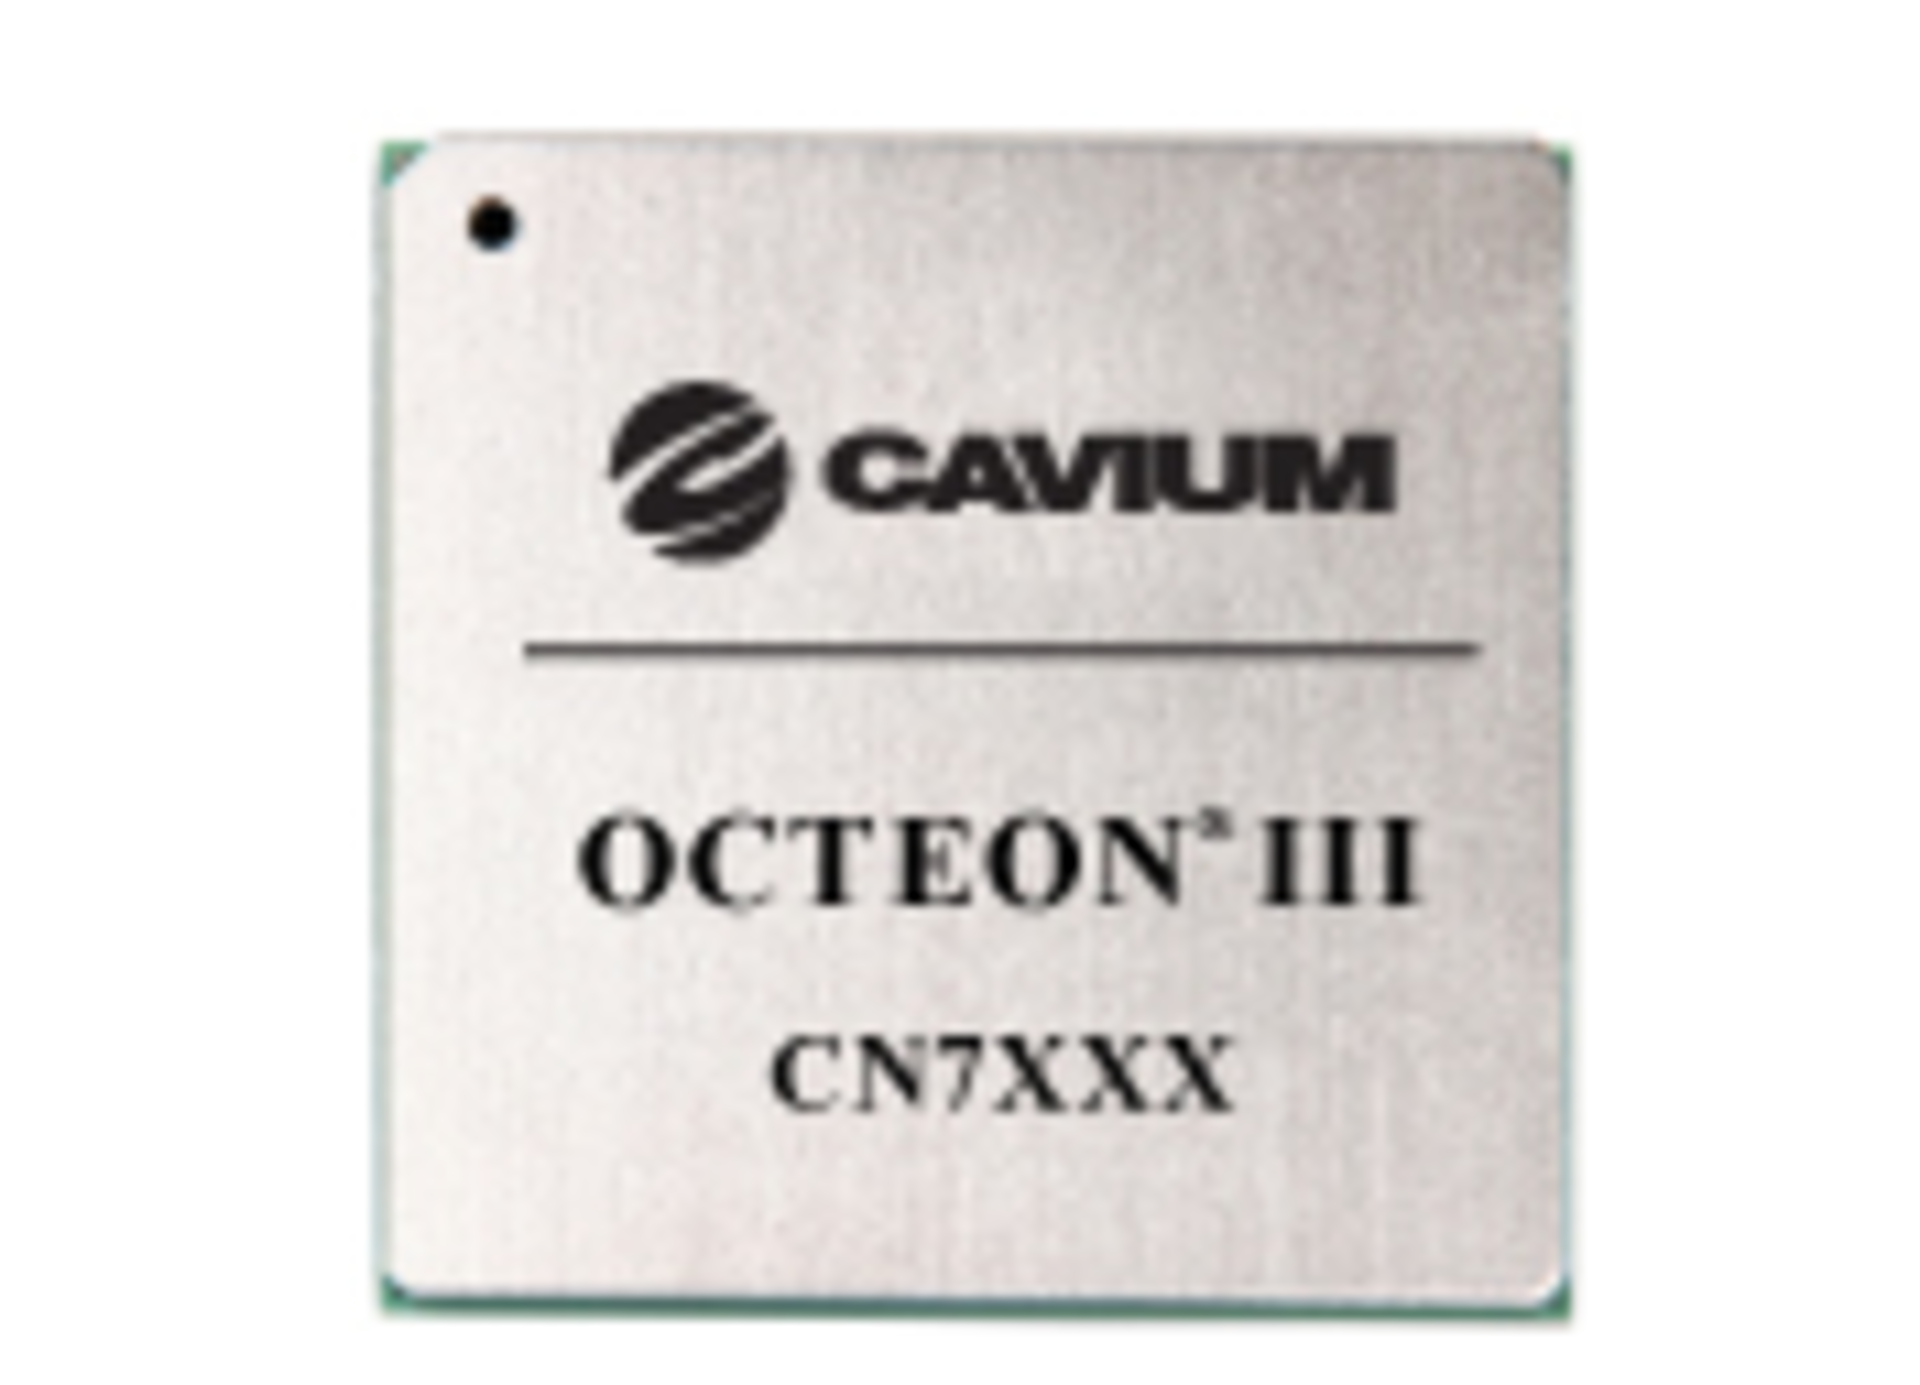 Marvell/ Cavium Semiconductor OCTEON III CN7890 Processor, QTY 10; Pass 2.0; AAP Option; 1.6GHz;